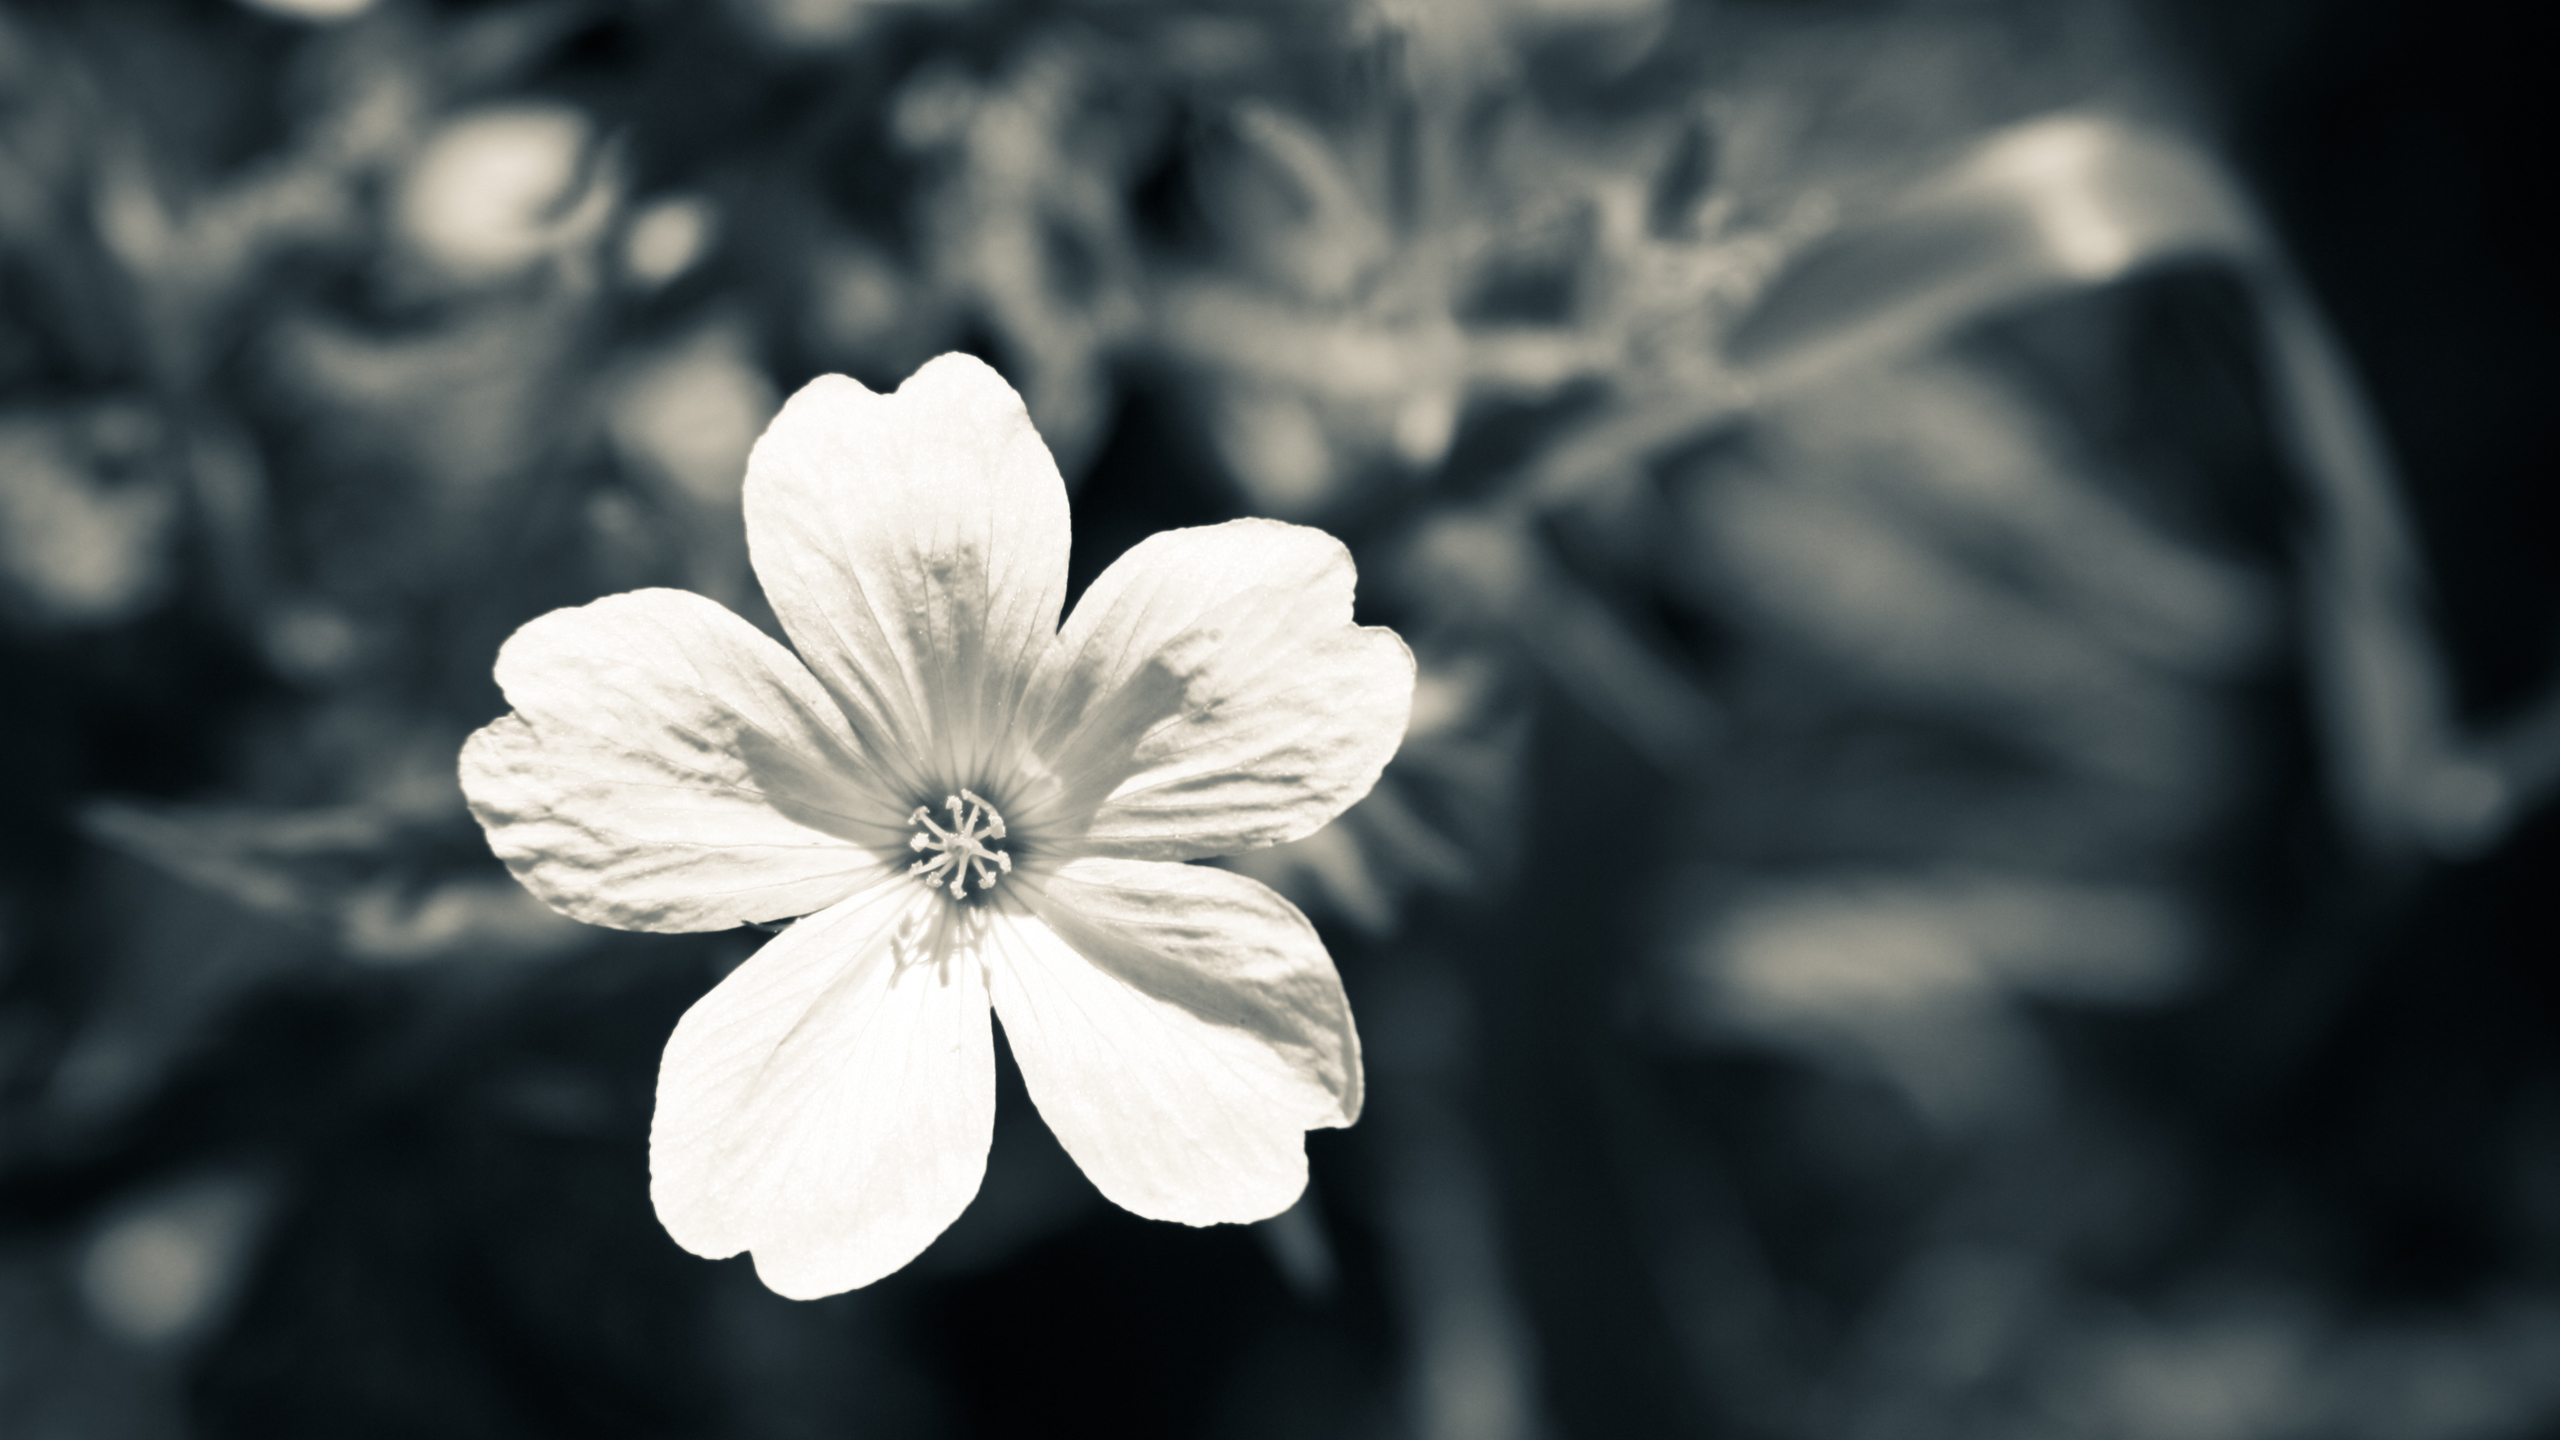 black and white flower wallpaper 2 background